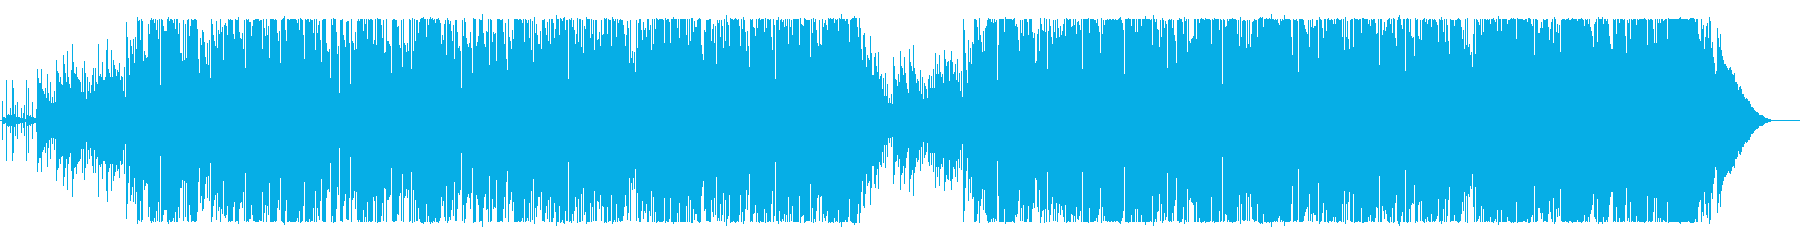 Romantic and adult atmosphere BGM's reproduced waveform